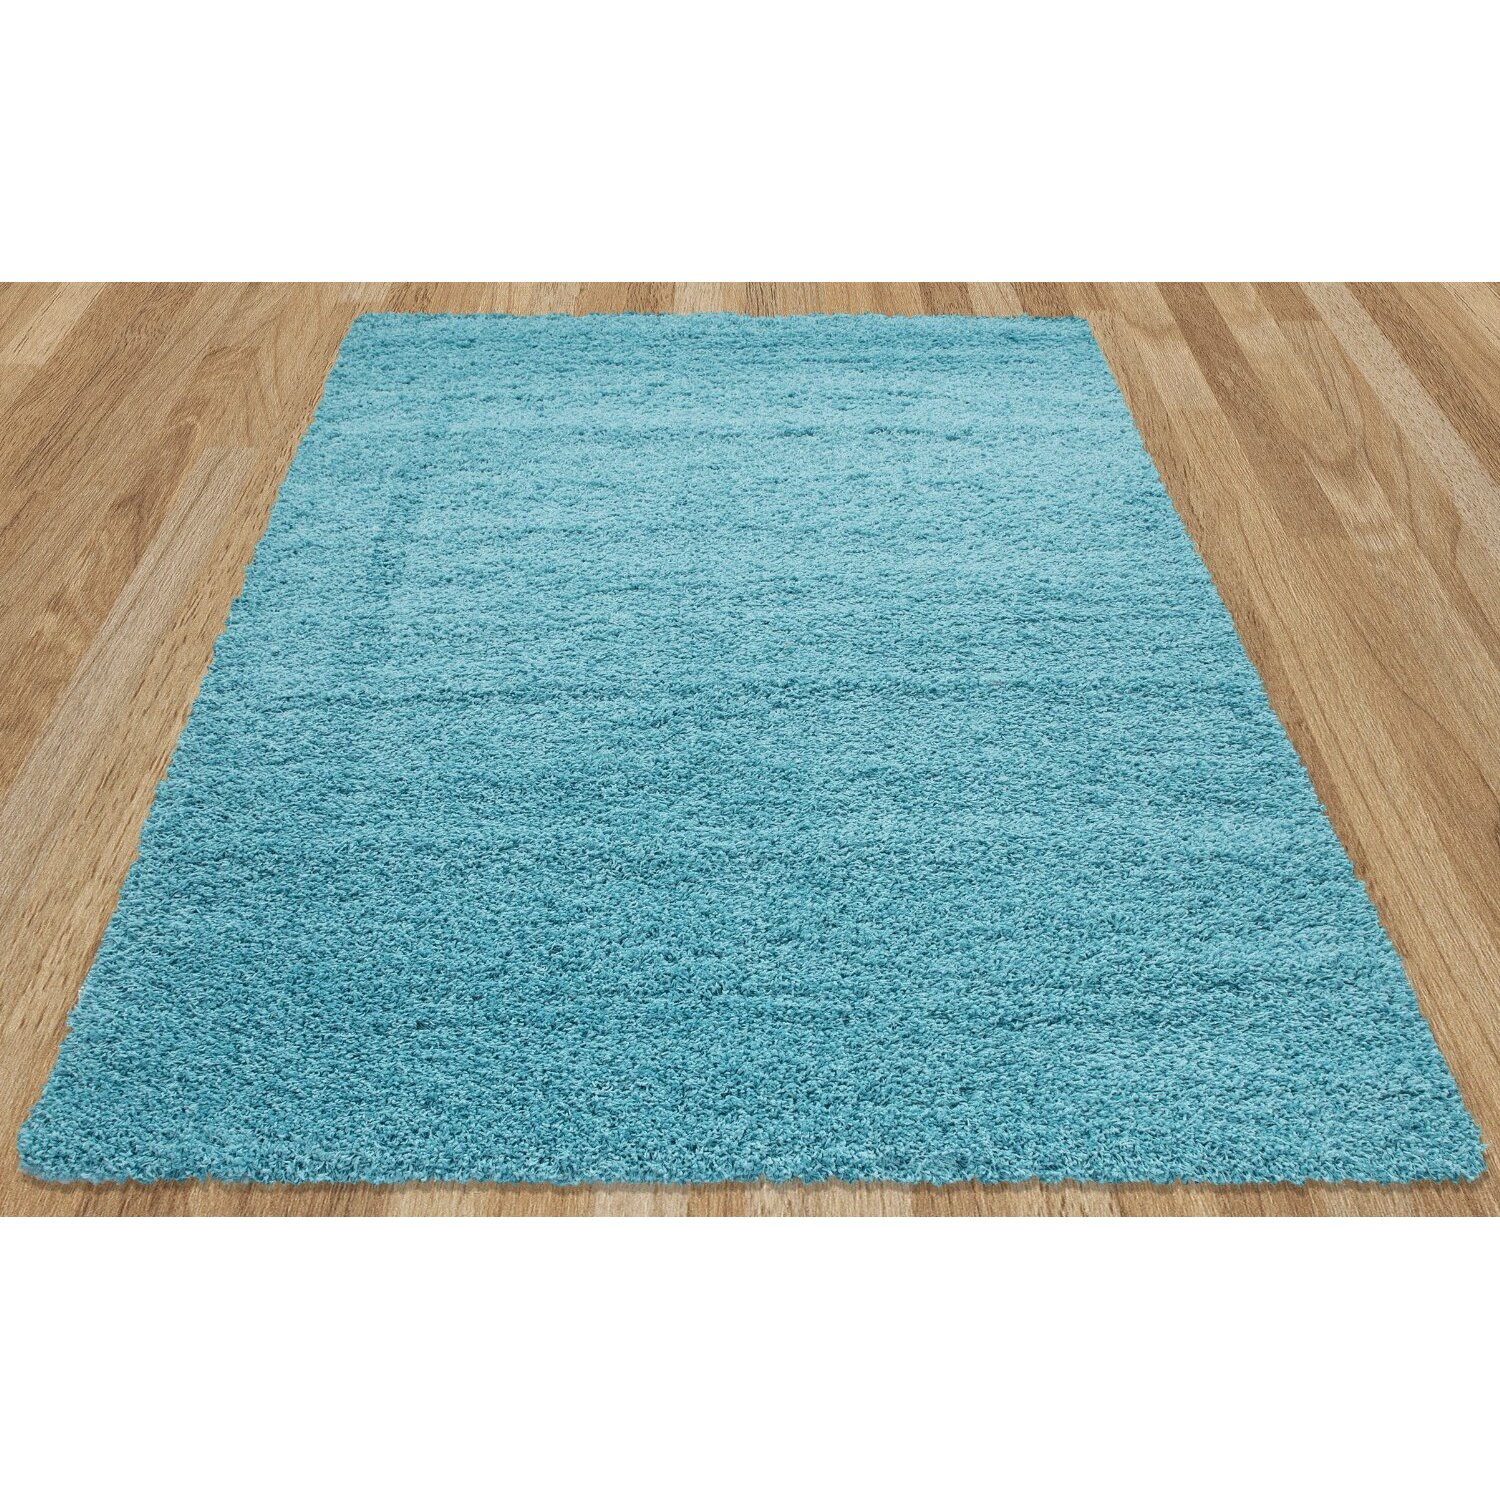 Sweet Home Stores Cozy Turquoise Blue Area Rug Reviews